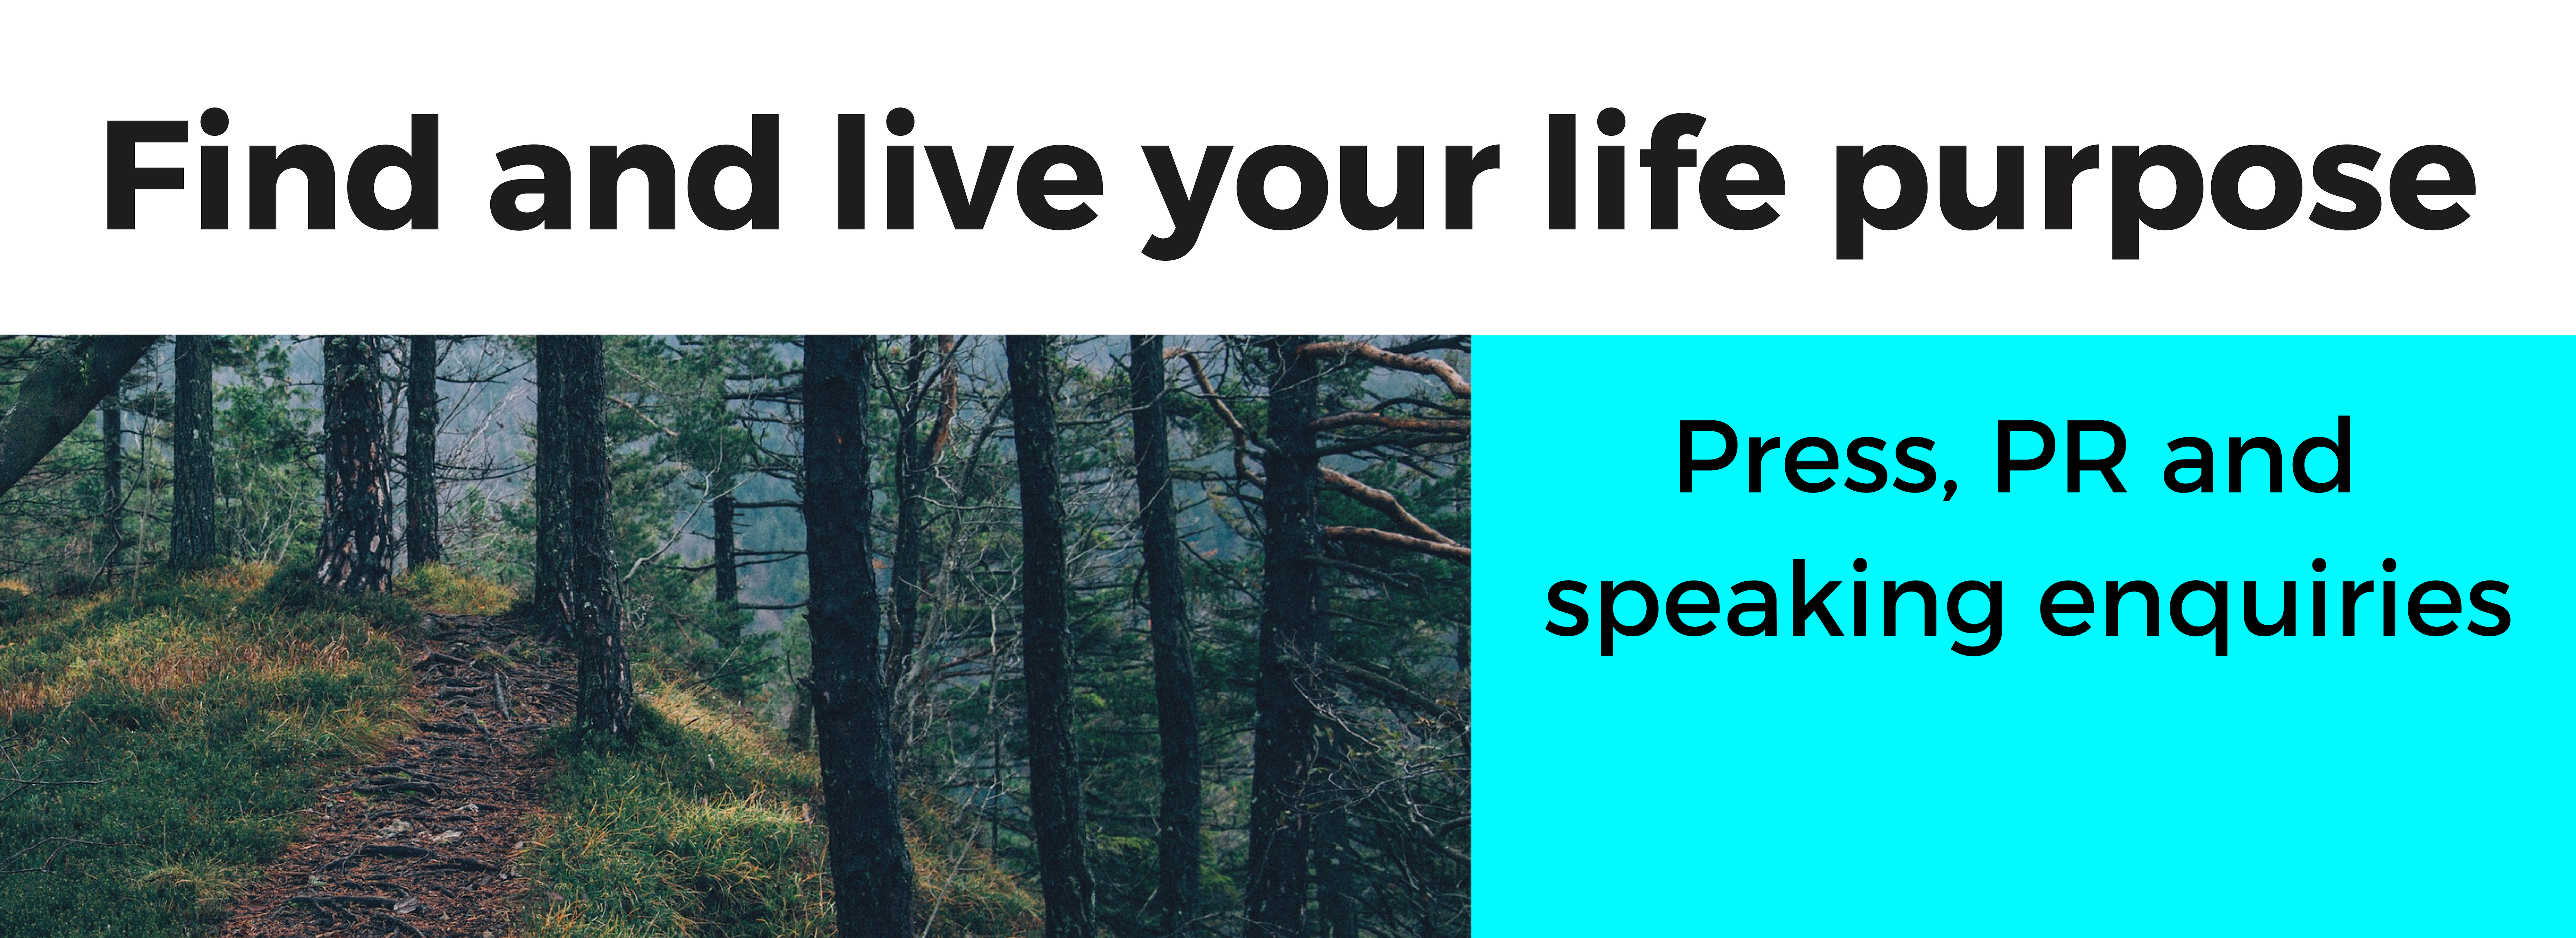 Find and live your life purpose PR banner